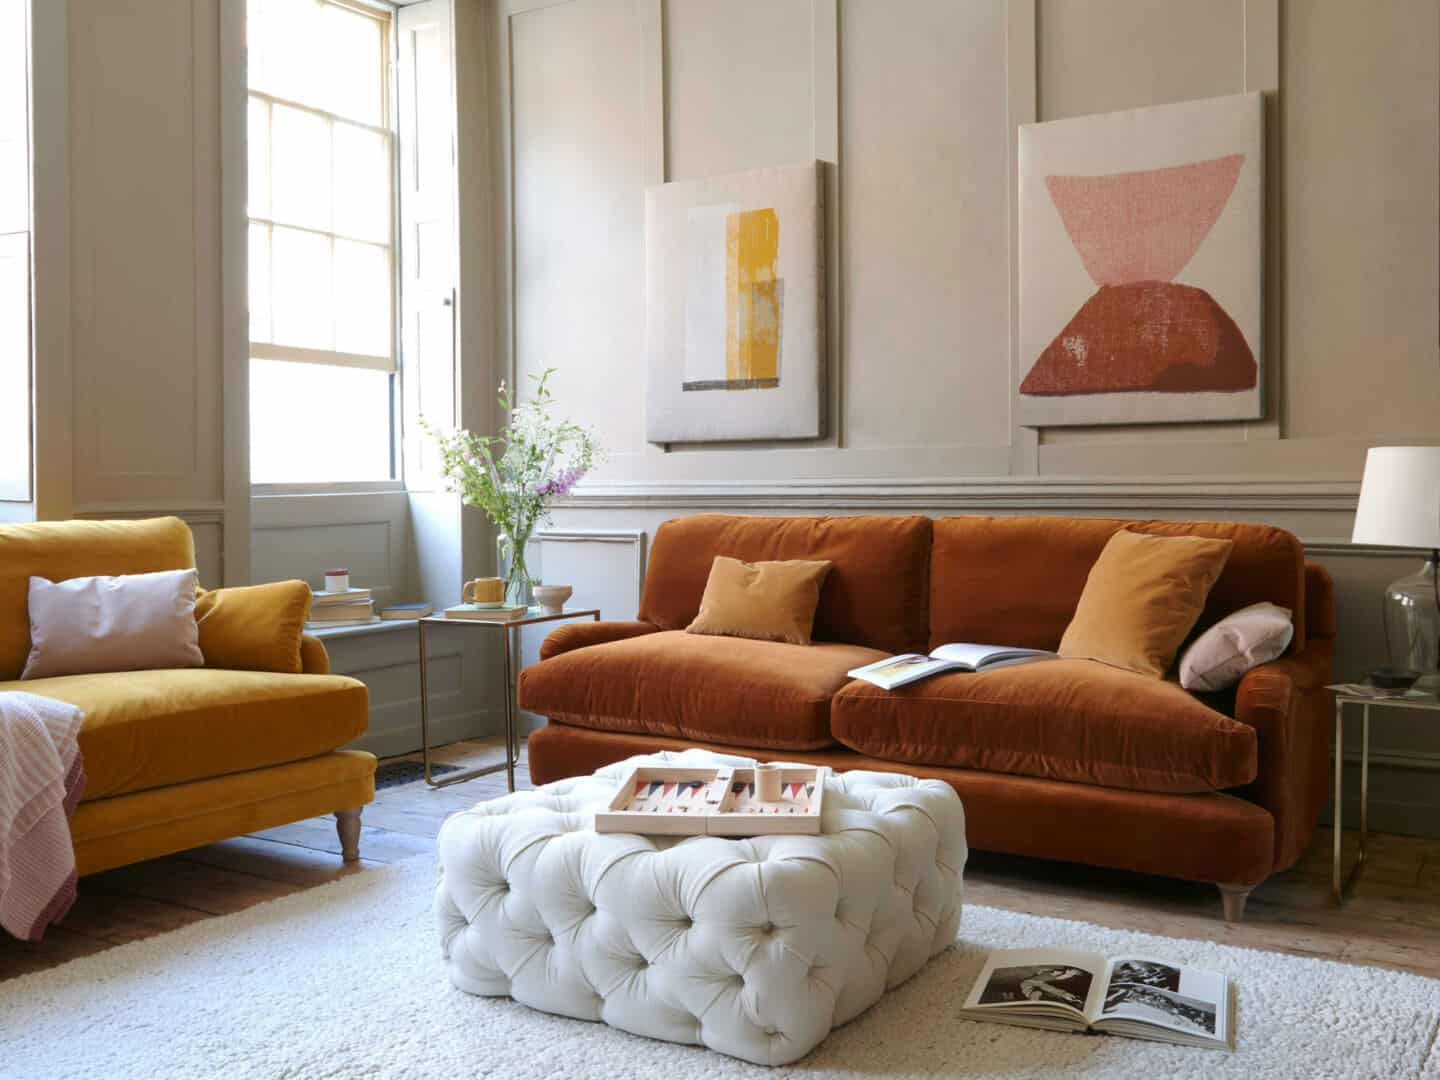 Autumnal Hues in interiors -Loaf Jonesy Sofa in Praline with abstract artwork on the wall behind and a white cushioned pouffe in front